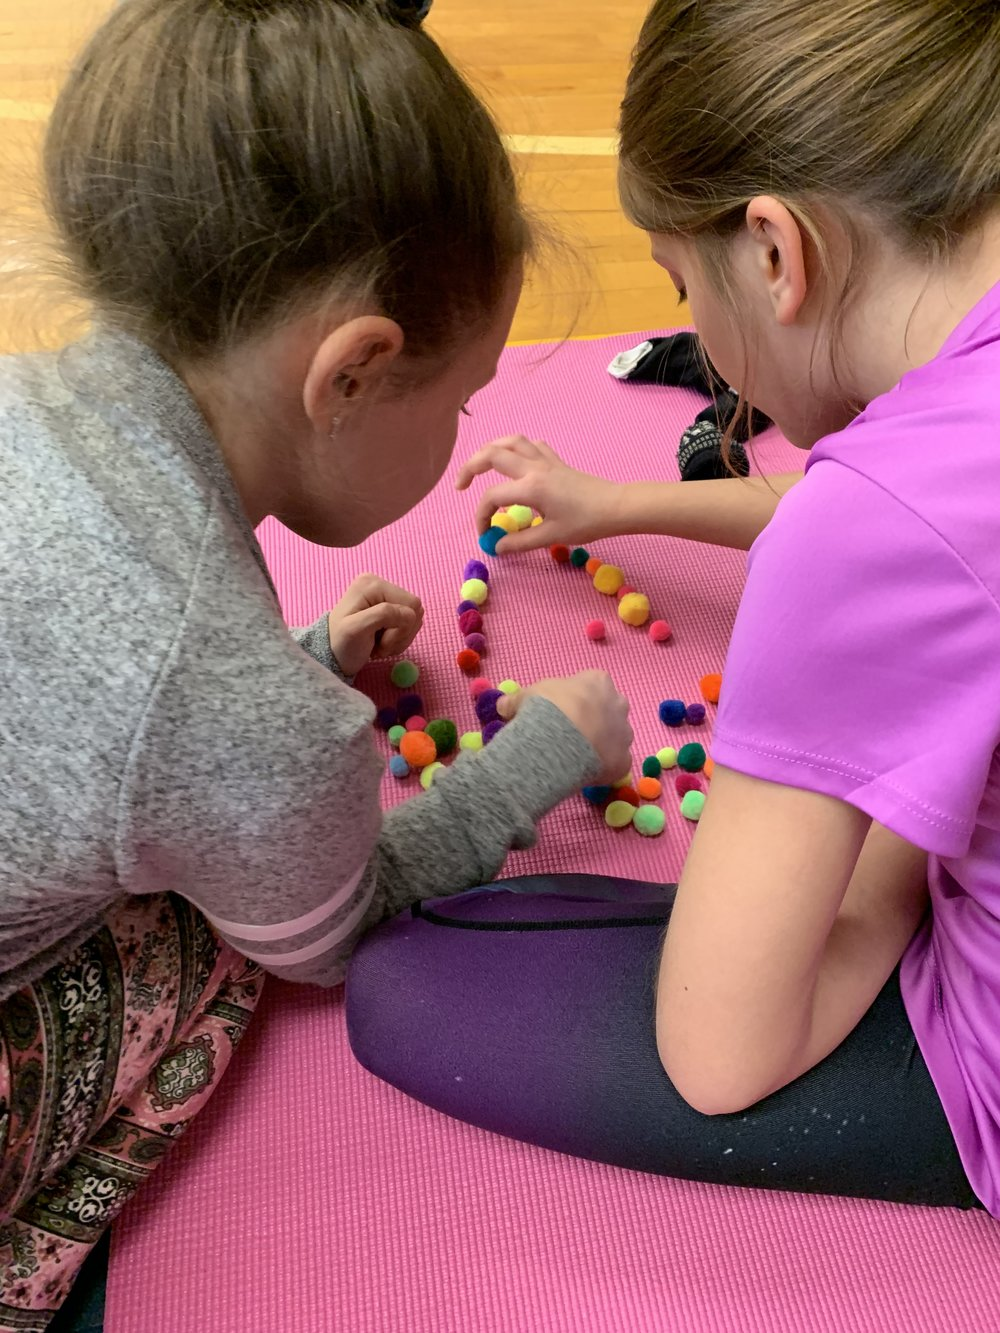 A mindful moment at this Yoga at School program. Partner-work and yoga buds :)